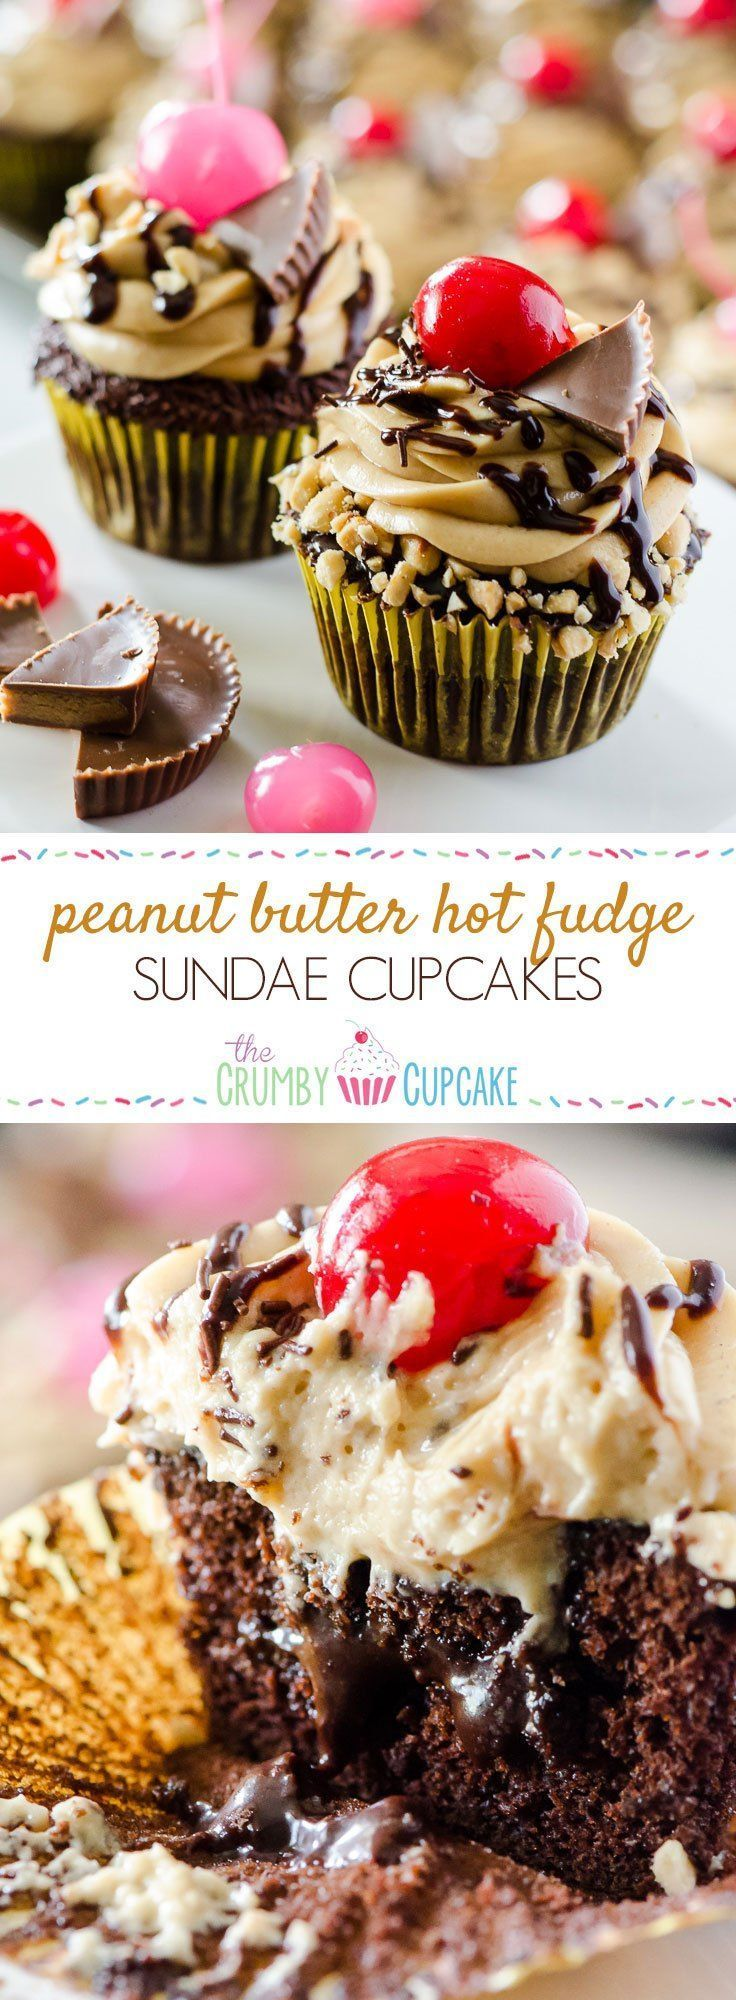 Take a bite of cupcake heaven! Tender chocolate cupcakes, stuffed with hot fudge sauce and topped with peanut butter mousse, these decadent Peanut Butter Hot Fudge Sundae Cupcakes won't melt like ice cream...but you might need a glass of milk to wash them